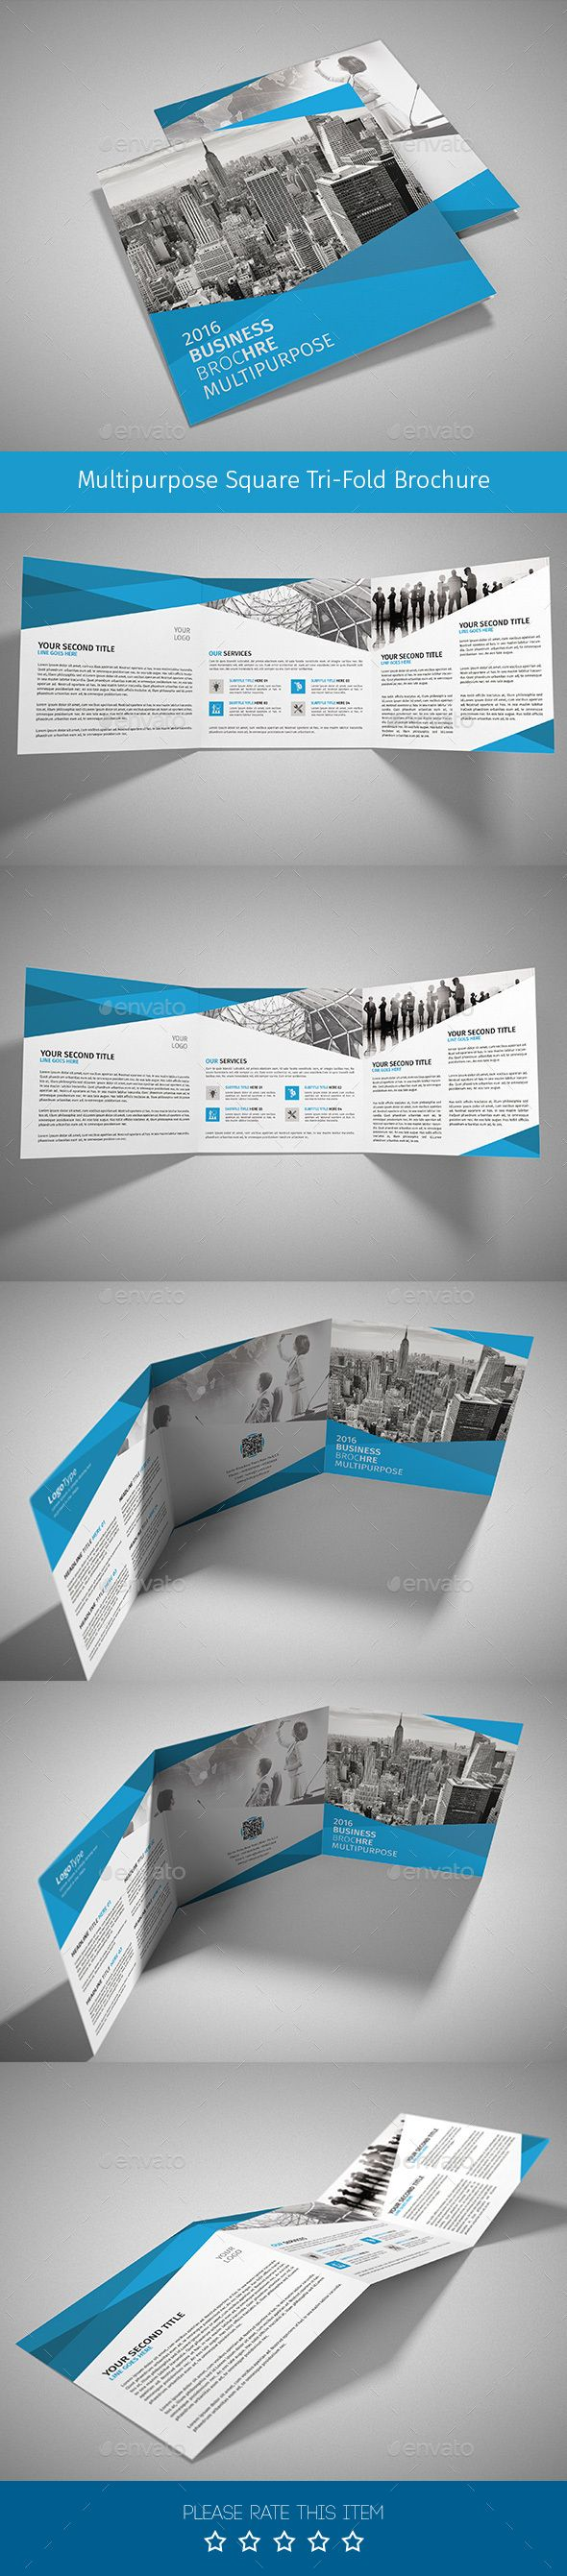 Corporate Tri-fold Square Brochure Template PSD #design Download: http://graphicriver.net/item/corporate-trifold-square-brochure-01/14008771?ref=ksioks